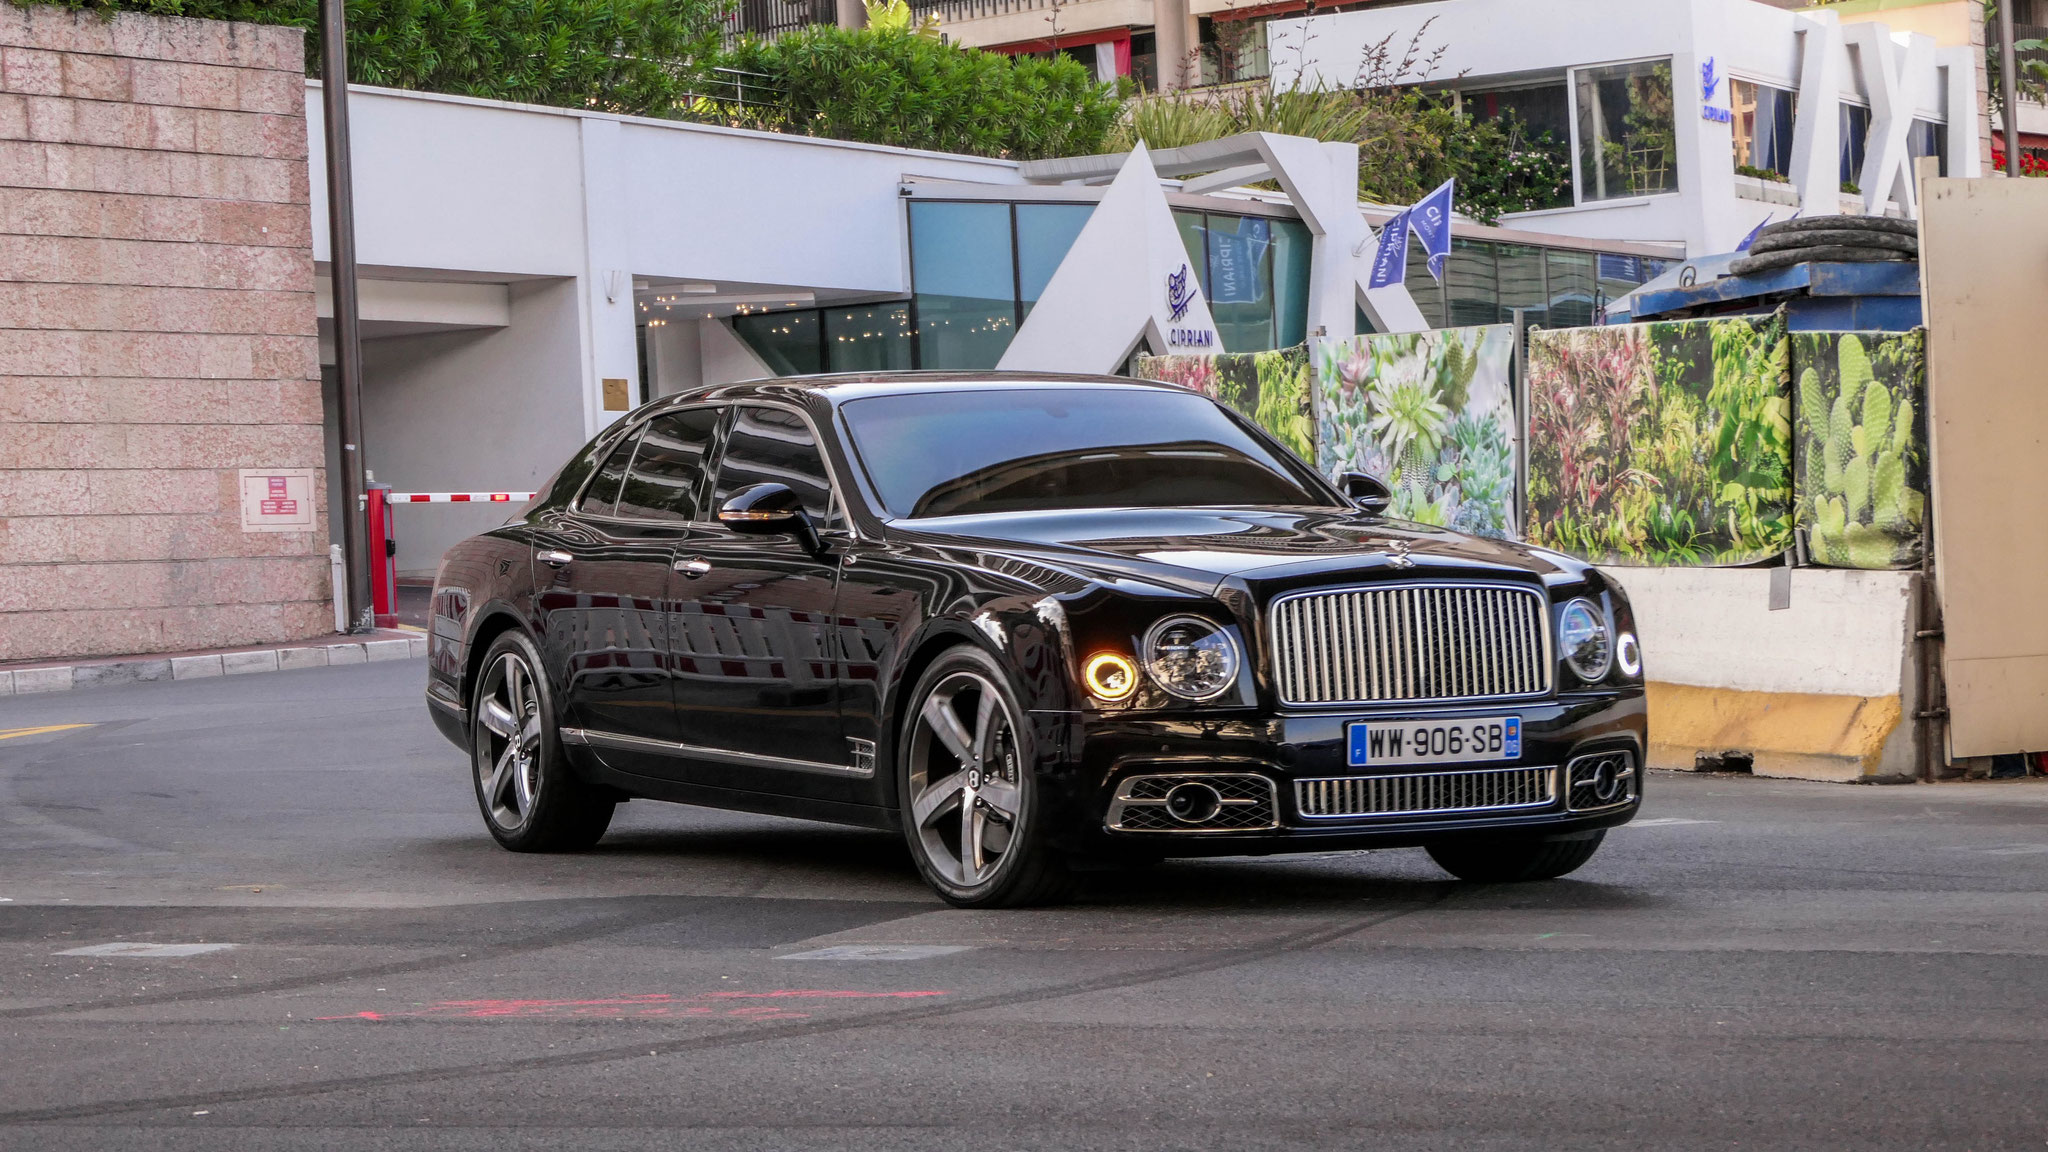 Bentley Mulsanne - WW-906-SB-06 (FRA)